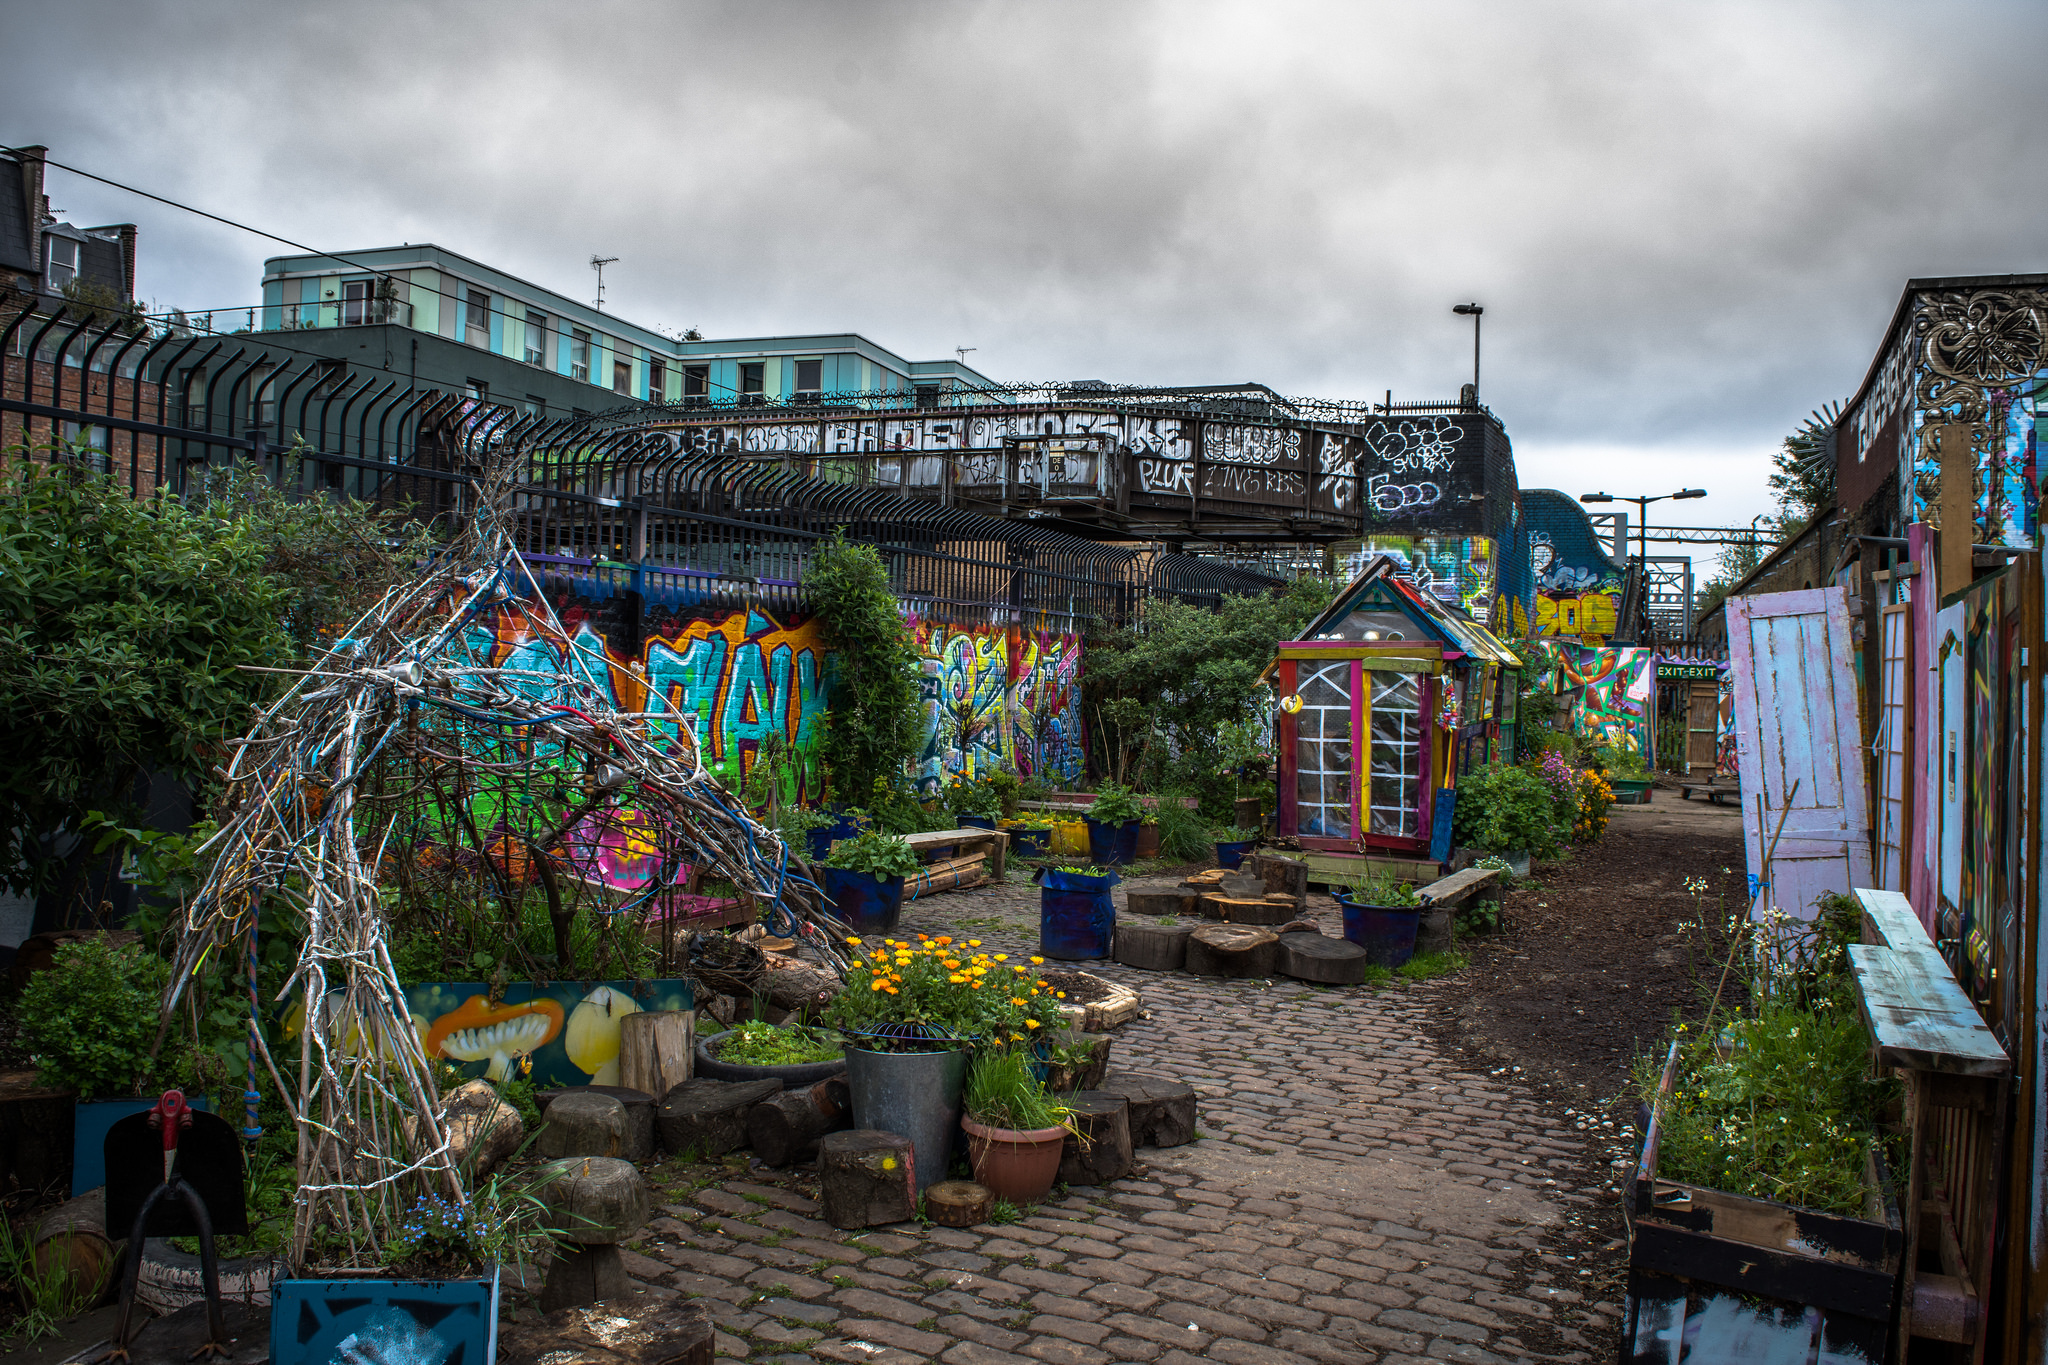 colorful community garden with graffiti on brick walls